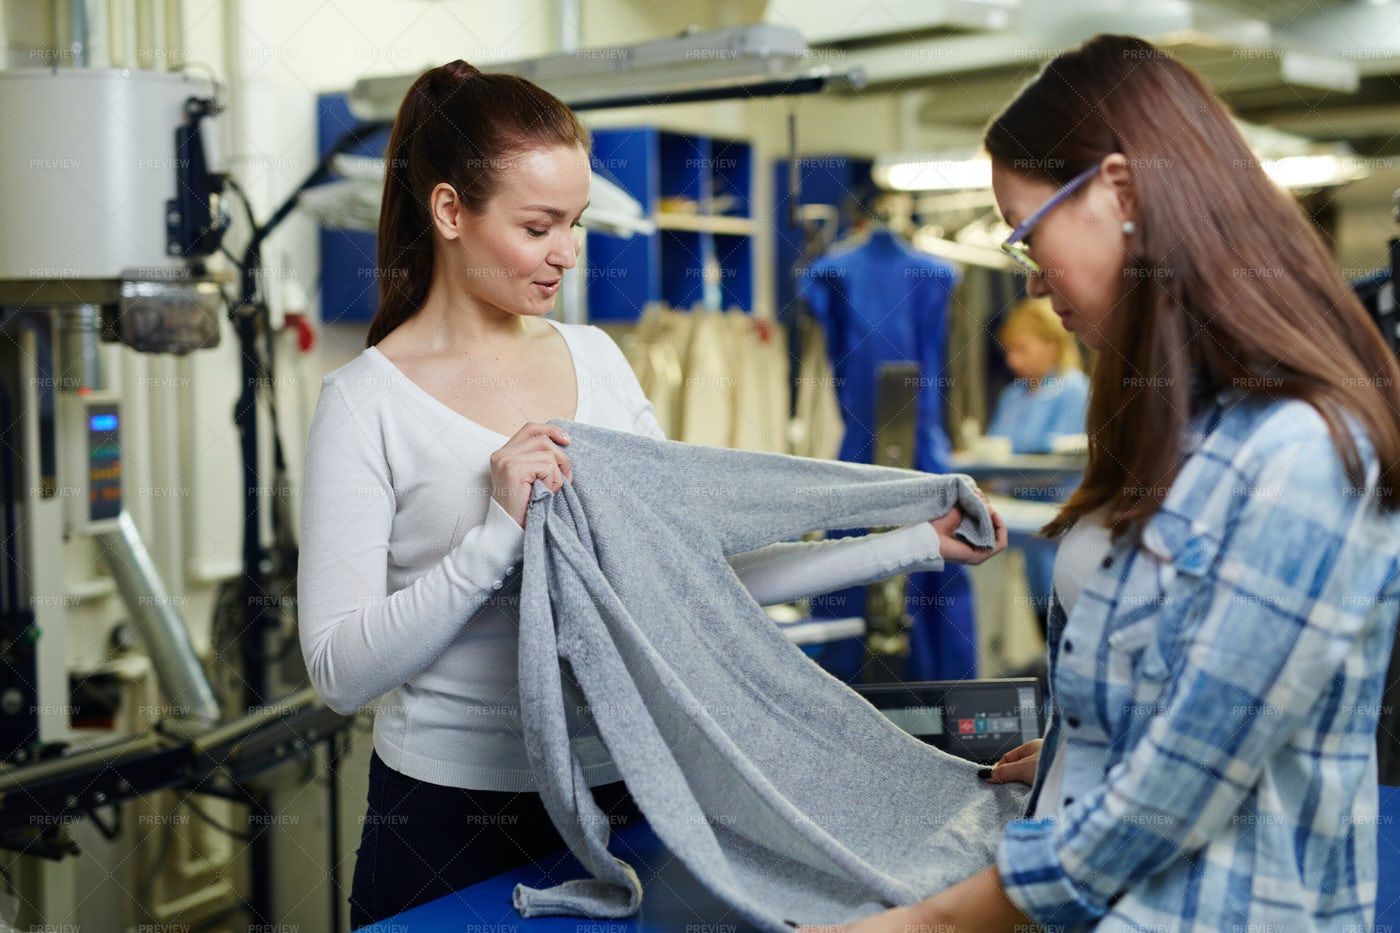 Pullover For Dry Cleaning: Stock Photos